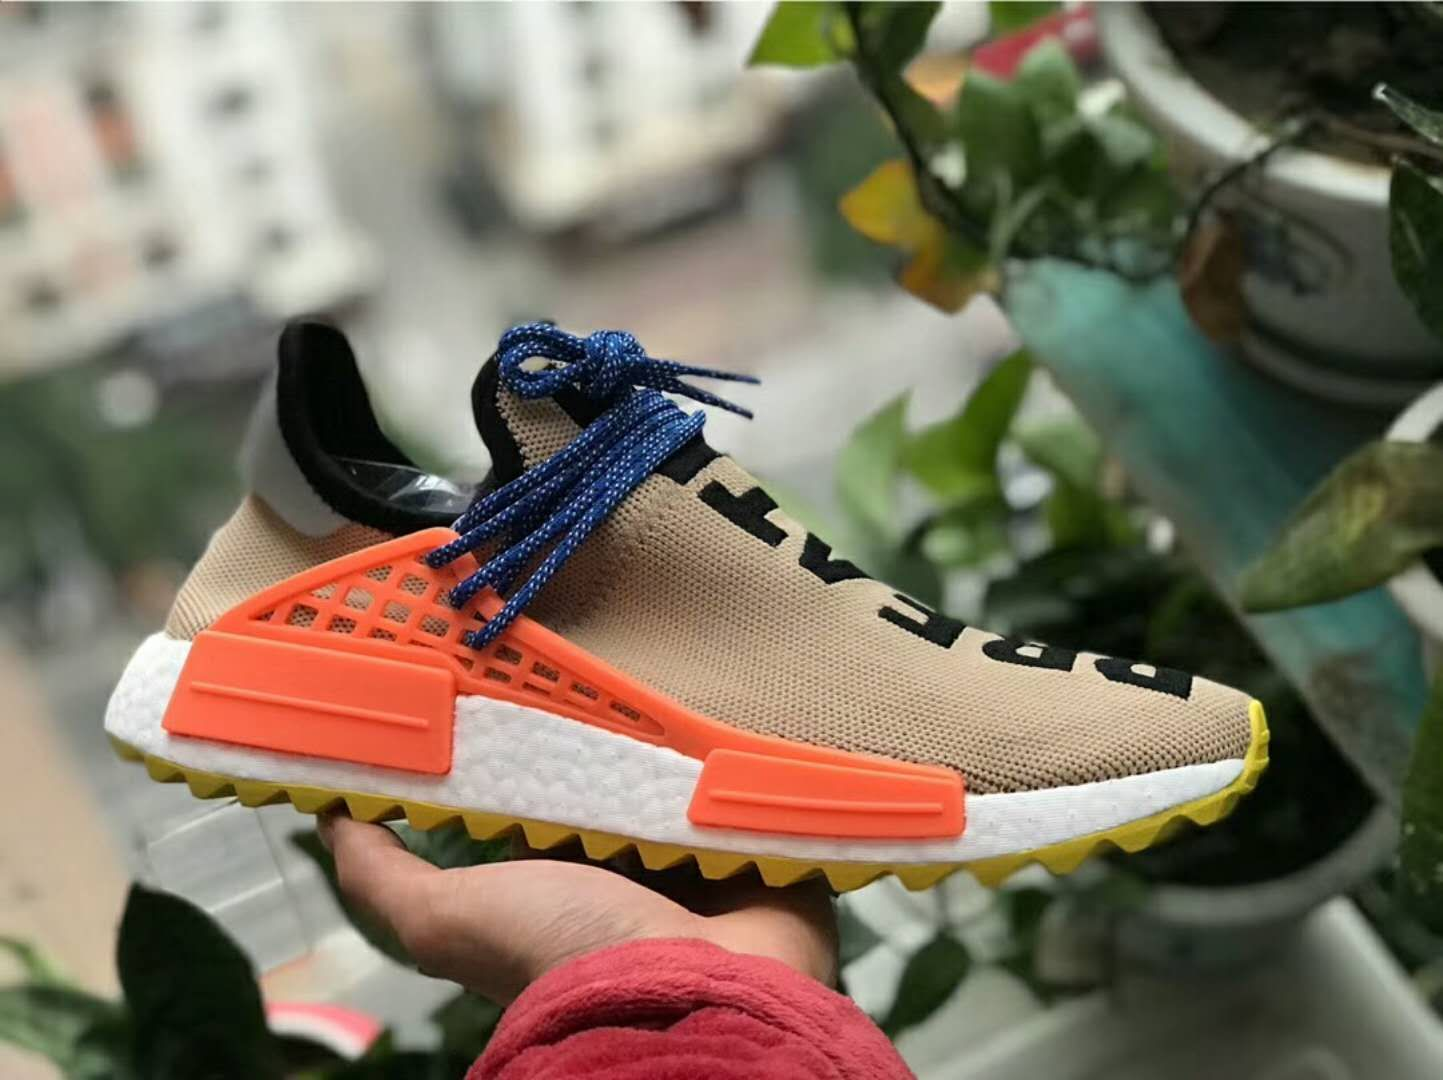 aaf73a7def0305 Pharrell Williams x adidas NMD Hu Trail Pale Nude AC7361